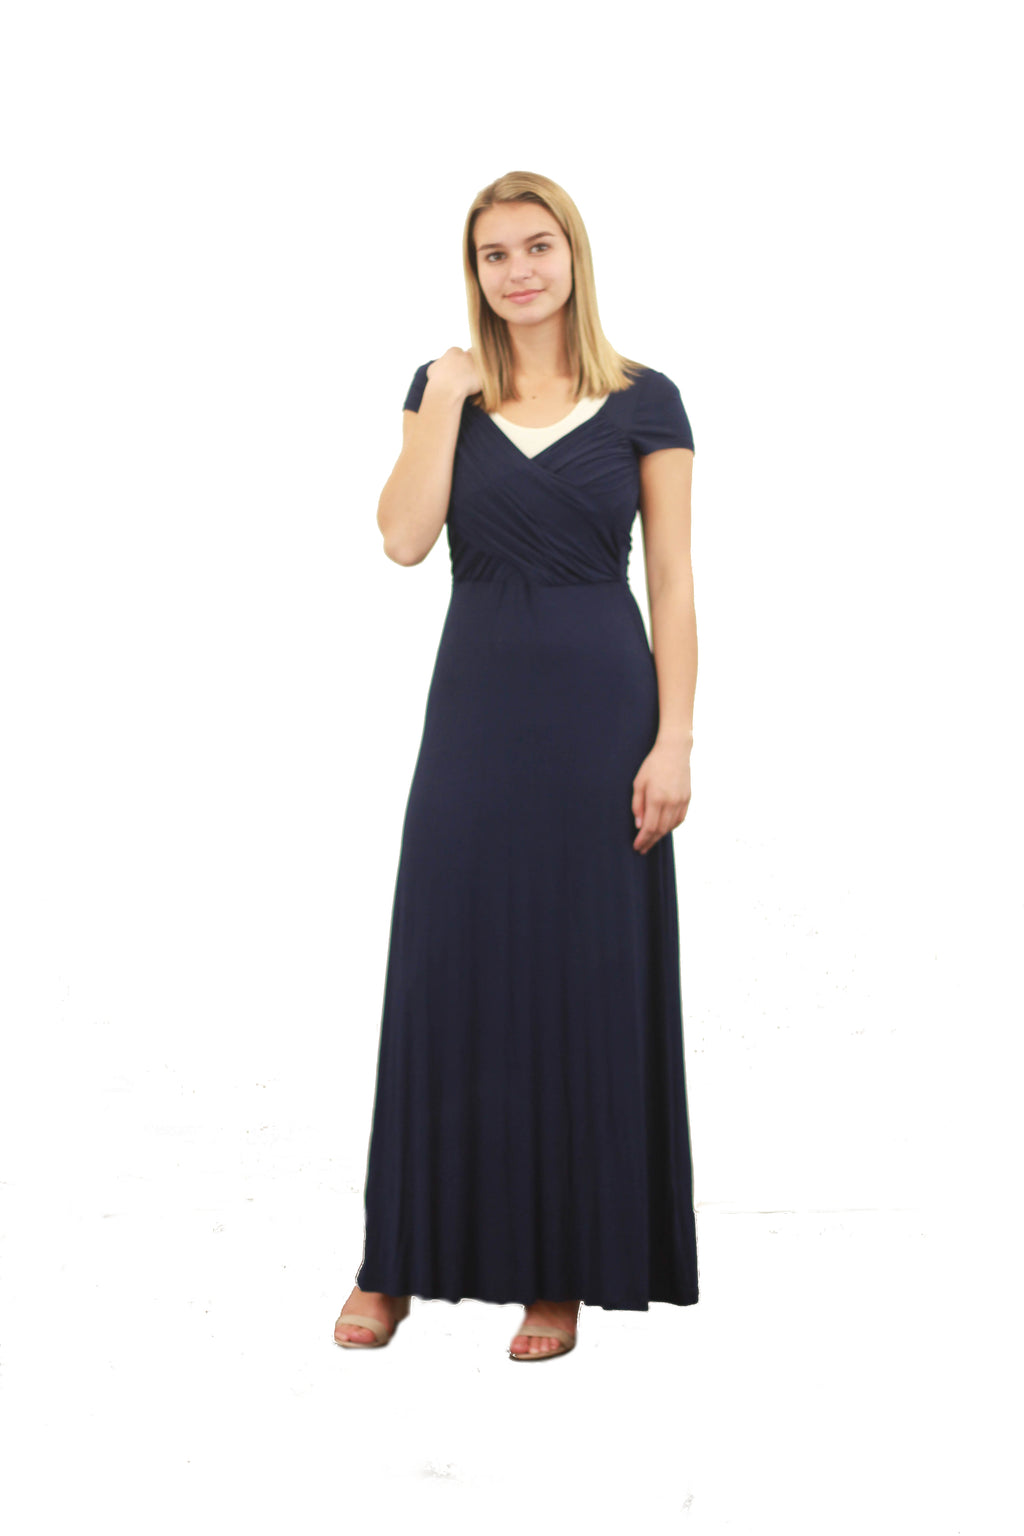 Crossover Front Maxi Dress - Final Sale